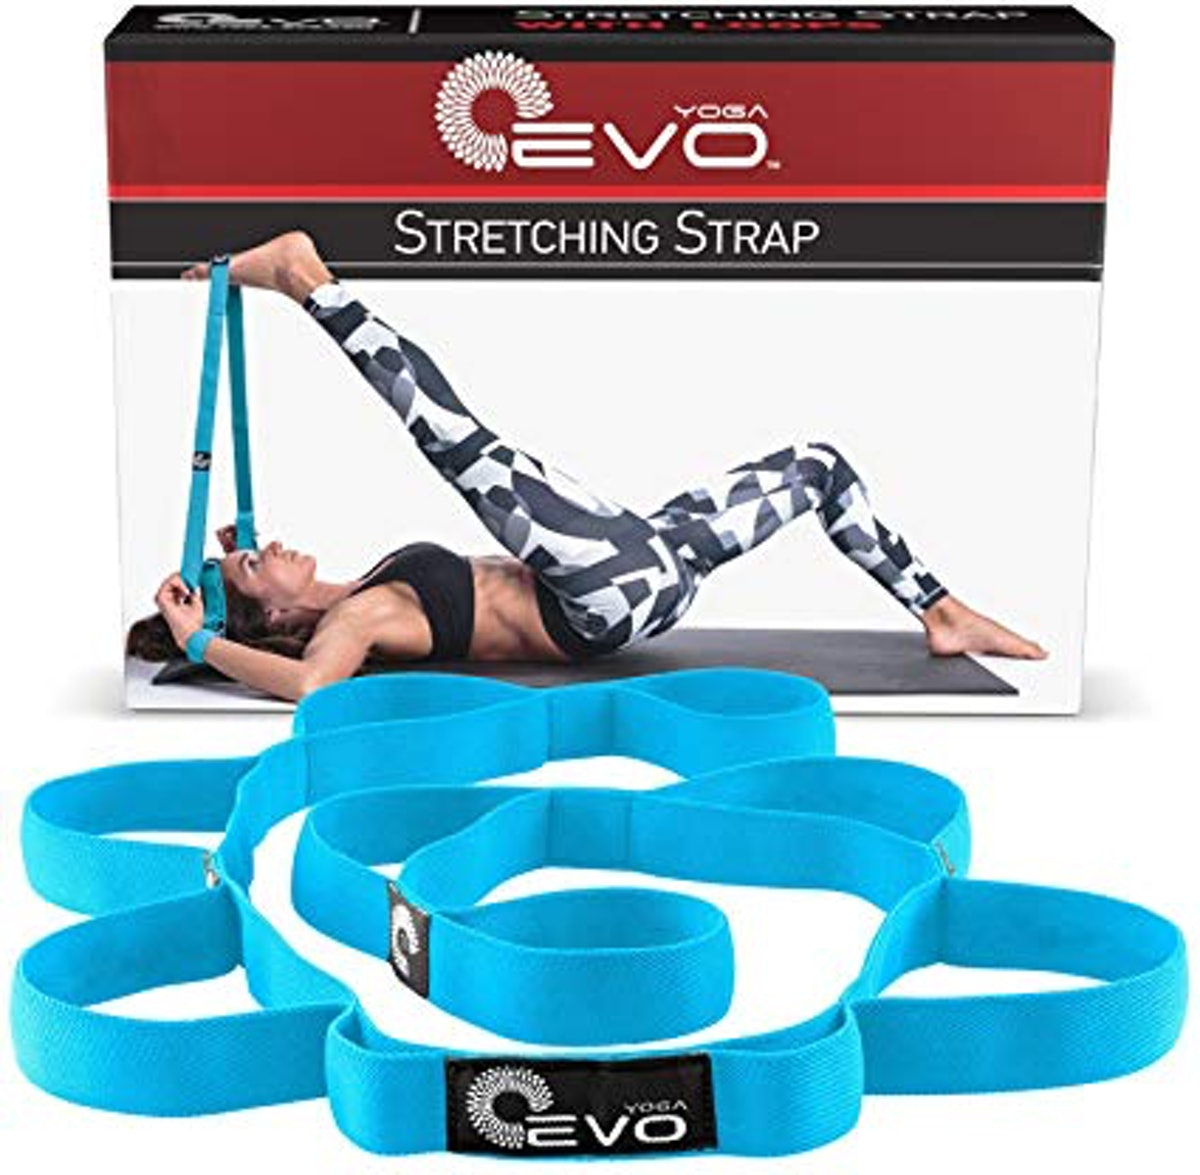 Yoga EVO Strap with Loops for Stretching